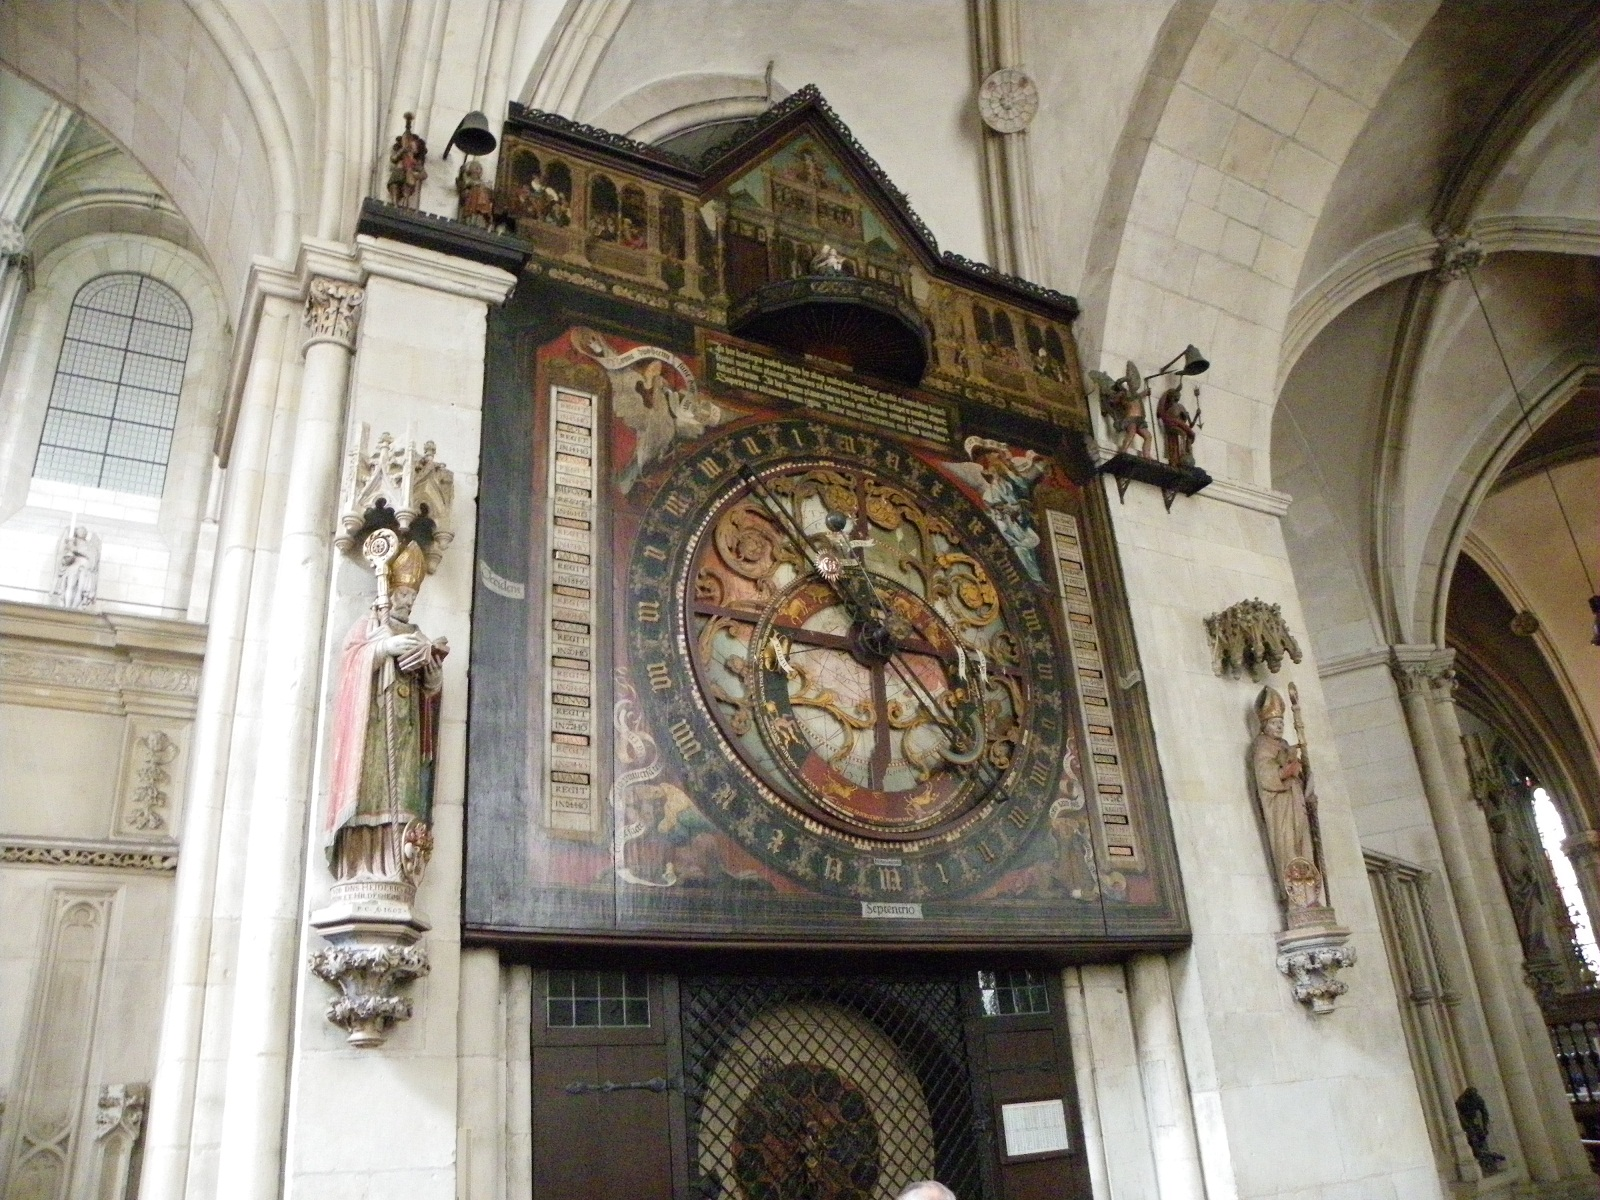 Saint Paulus Dom, Munster, Germany, Interior sundial